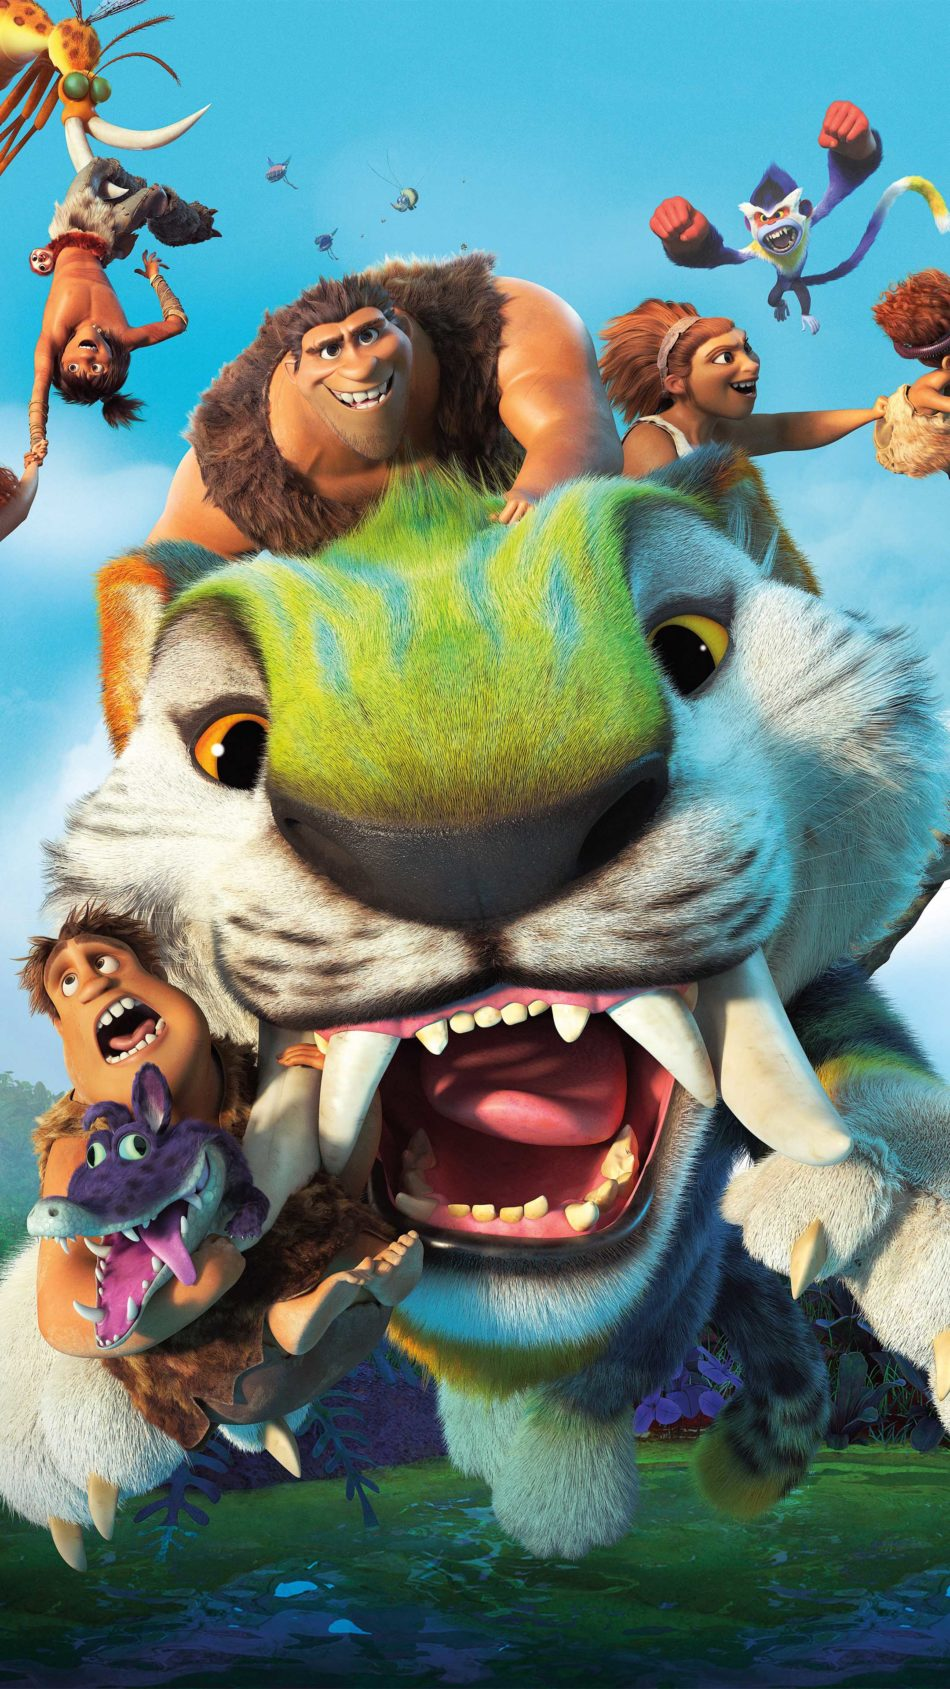 The Croods A New Age 2020 Poster 4K Ultra HD Mobile Wallpaper